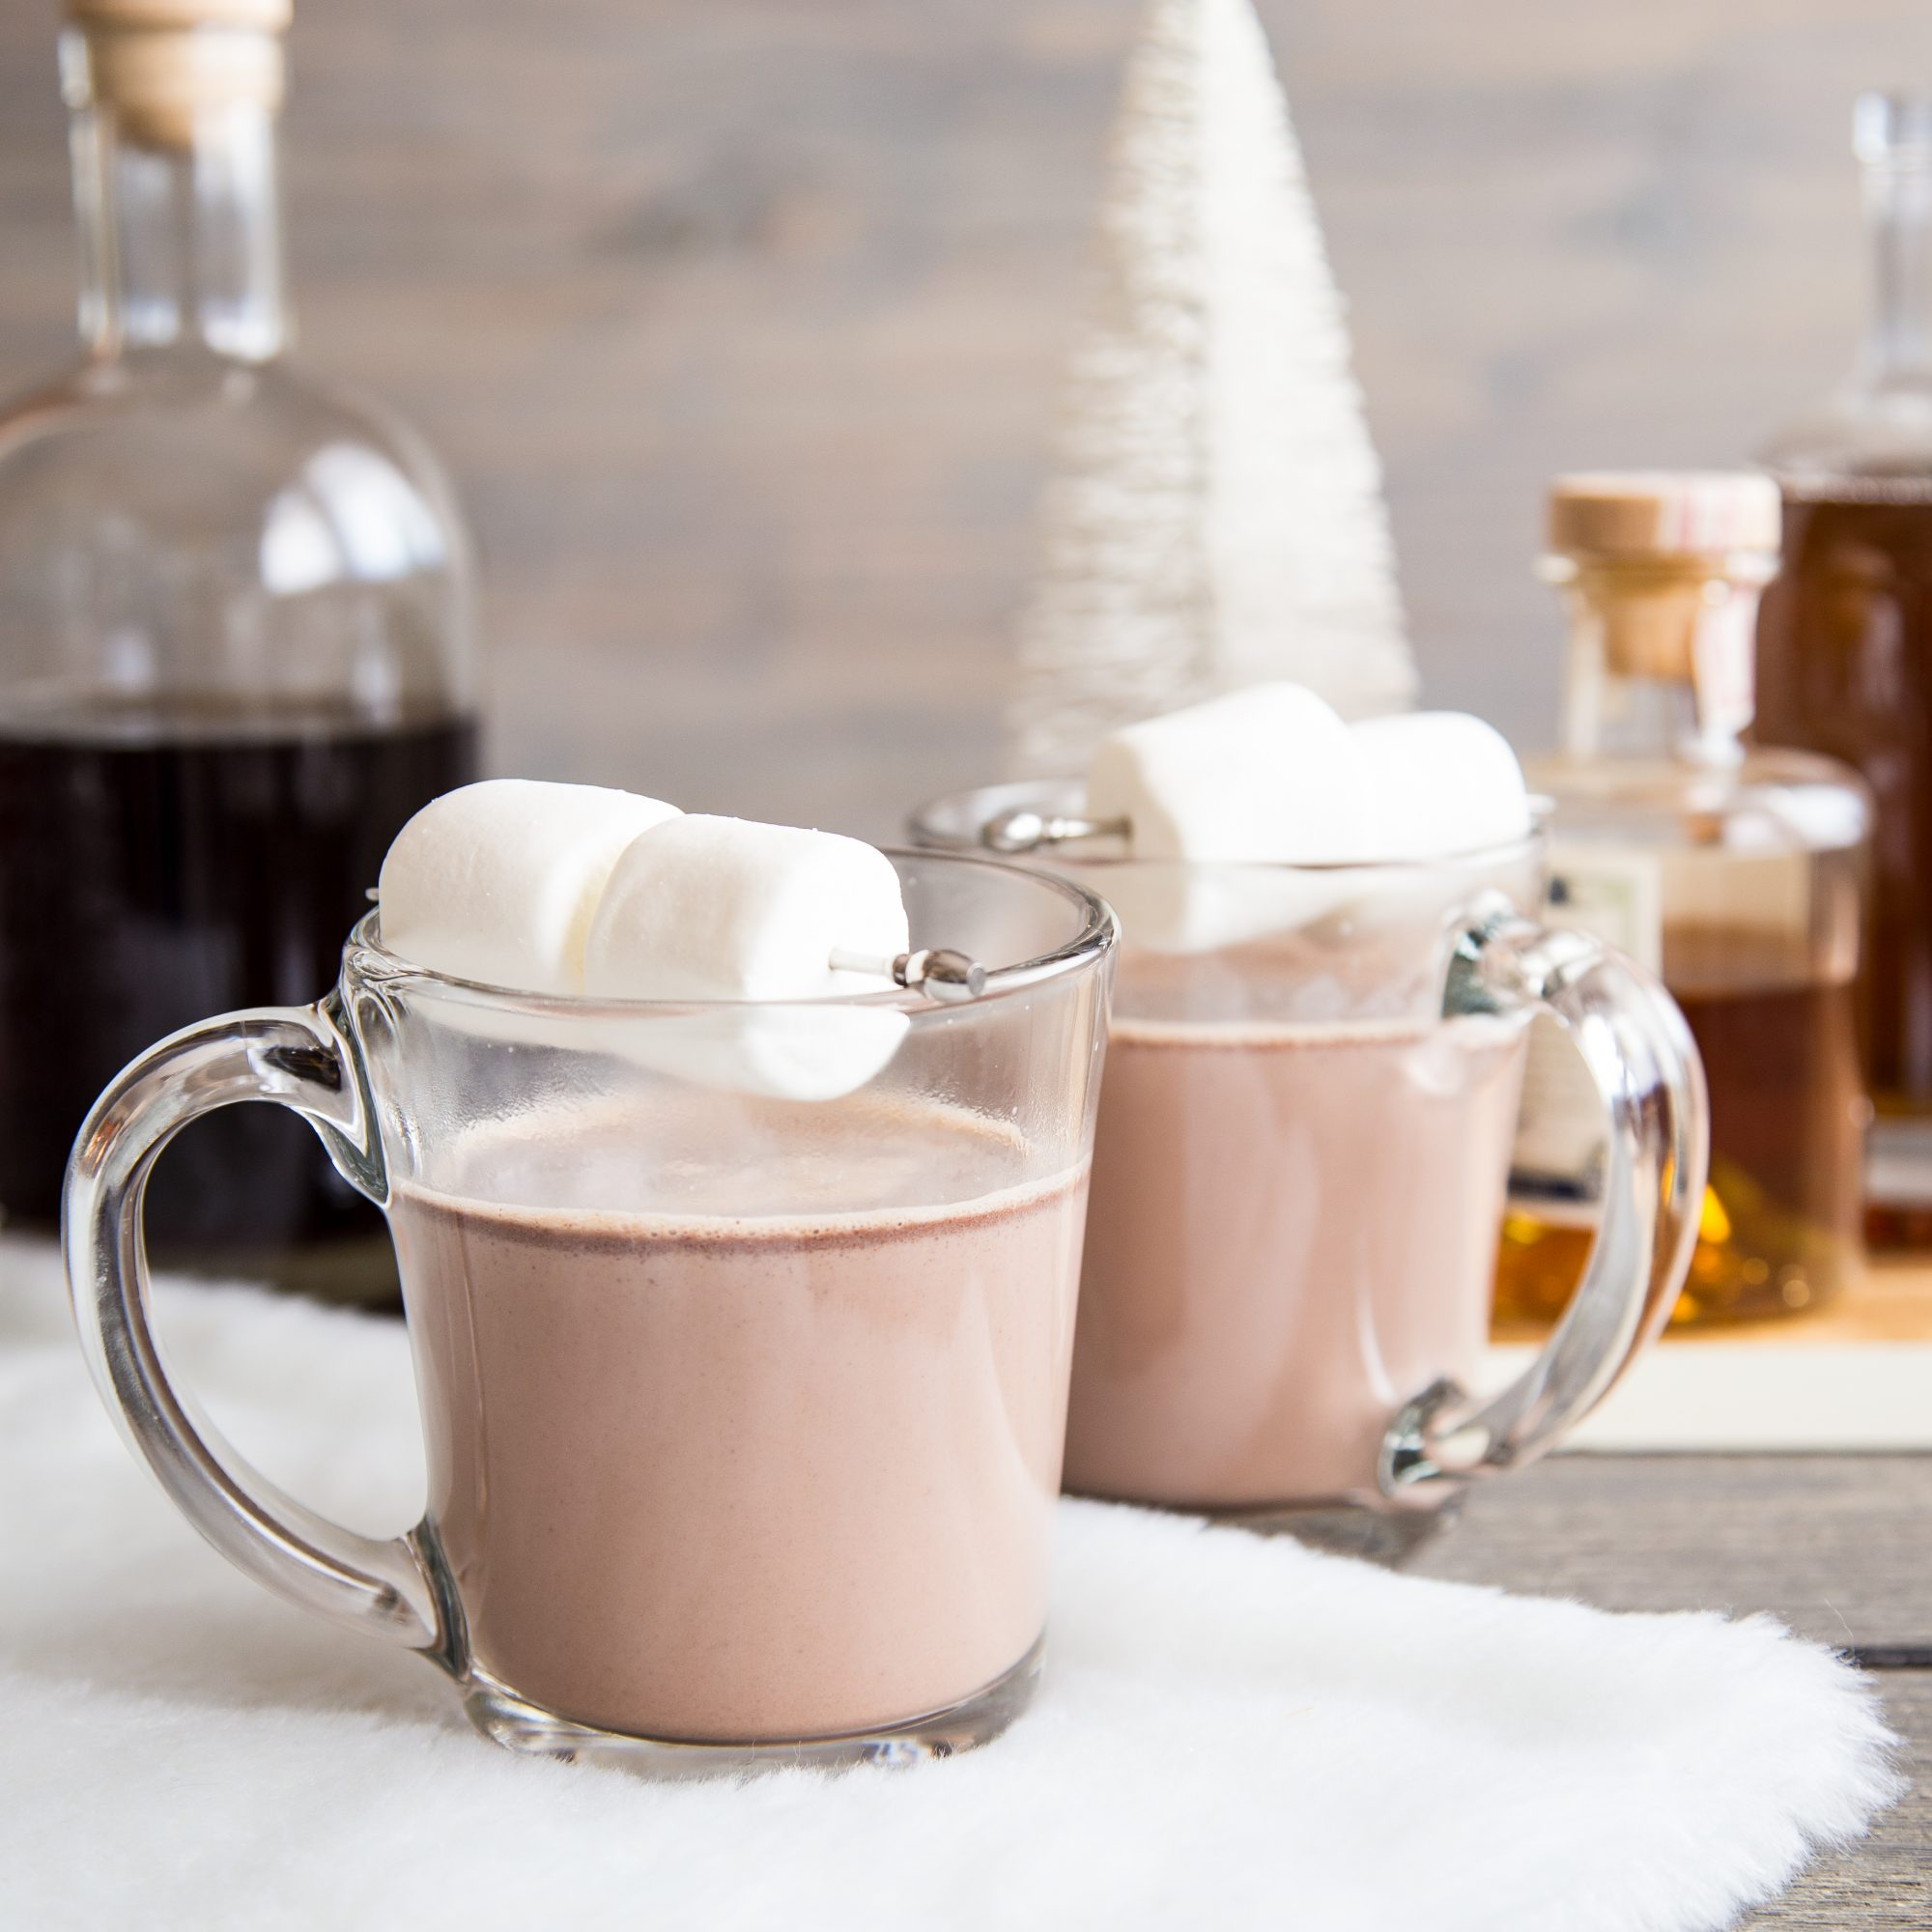 two mugs of spiked hot chocolate with with marshmallows on top and bottles in the background